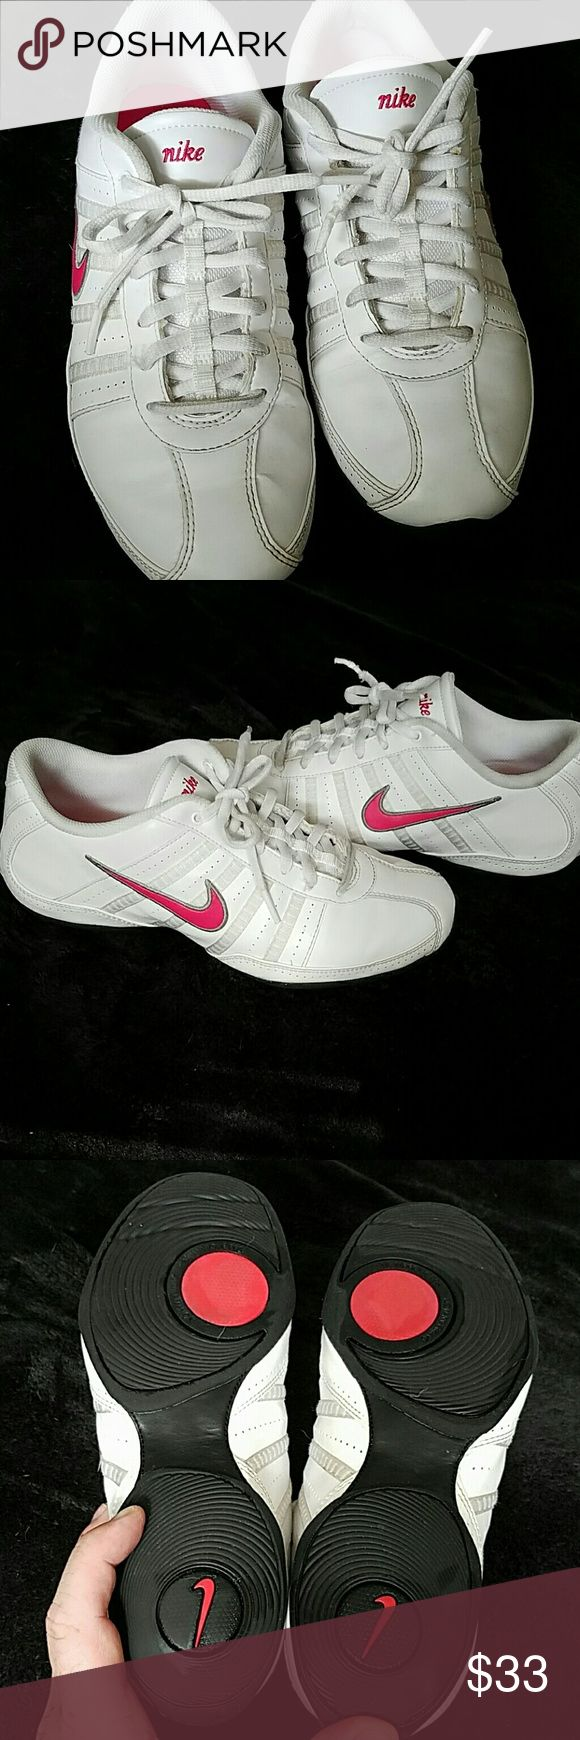 Ladies Nike sneakers White and pink ladies Nike trainers beautiful condition Nike Shoes Sneakers